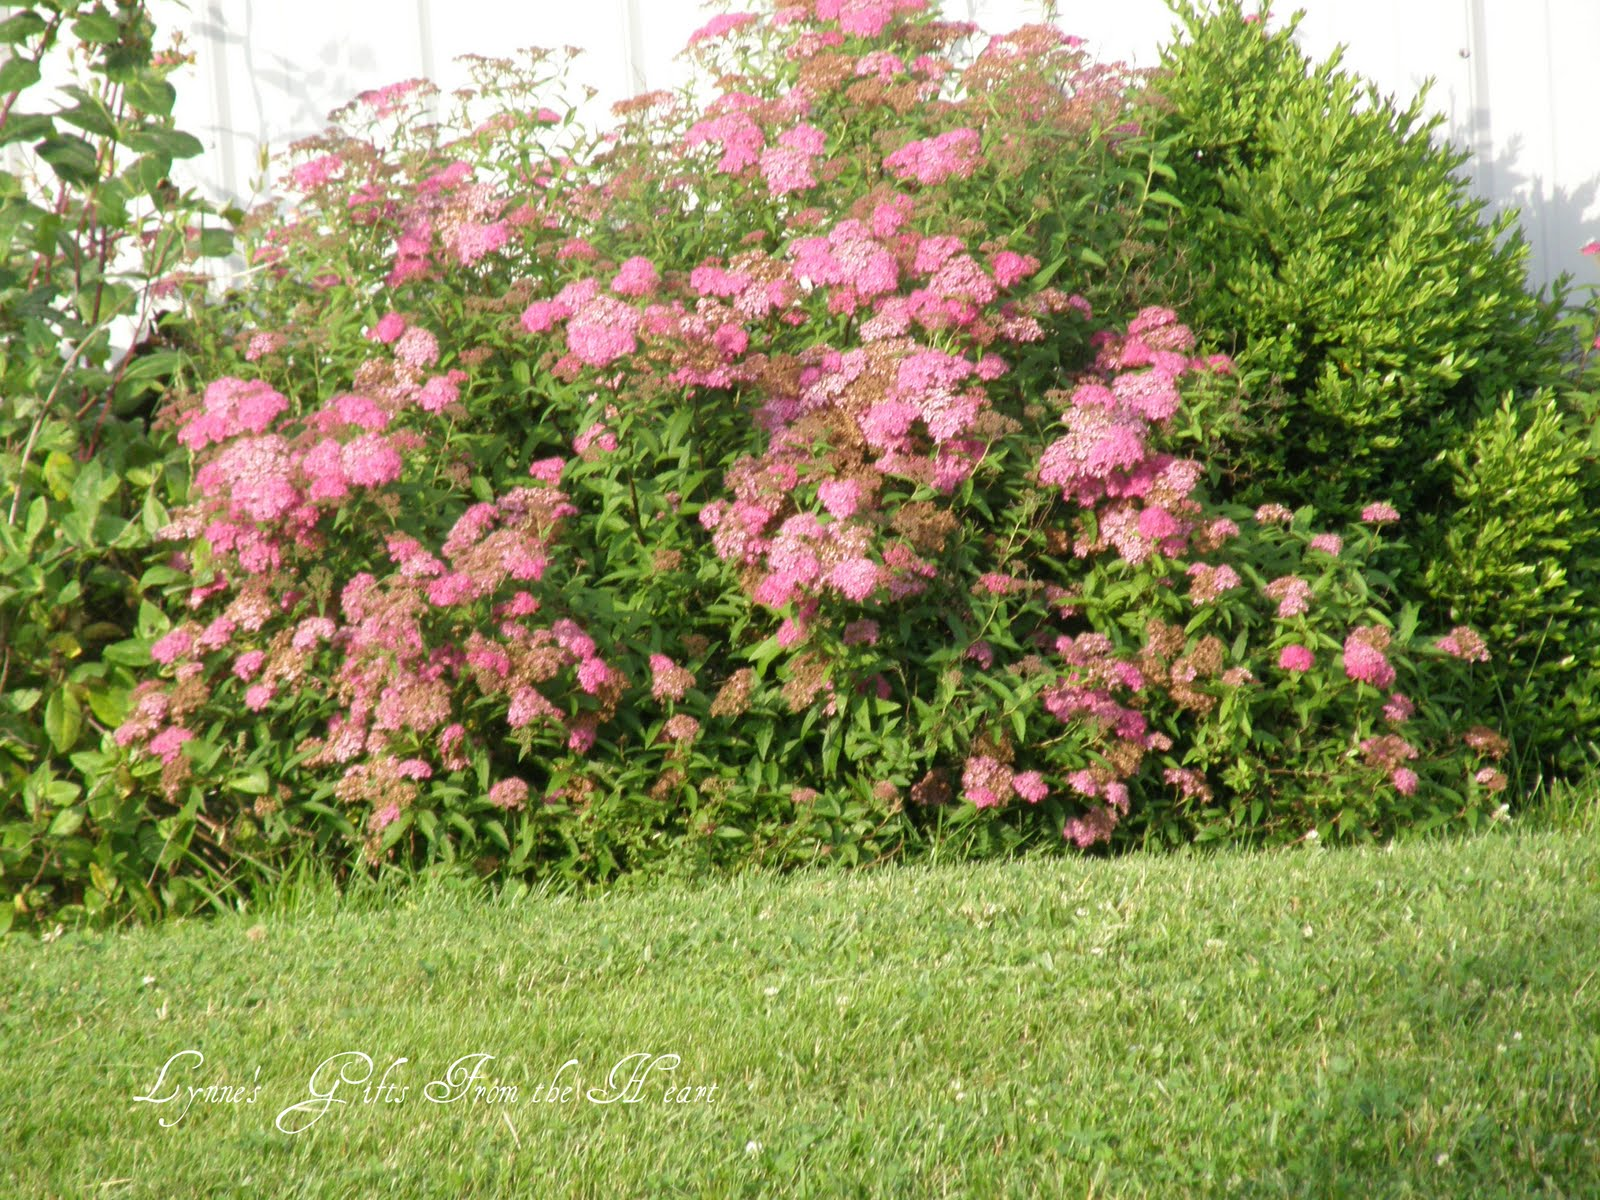 Displaying 16 gt images for white spirea bush